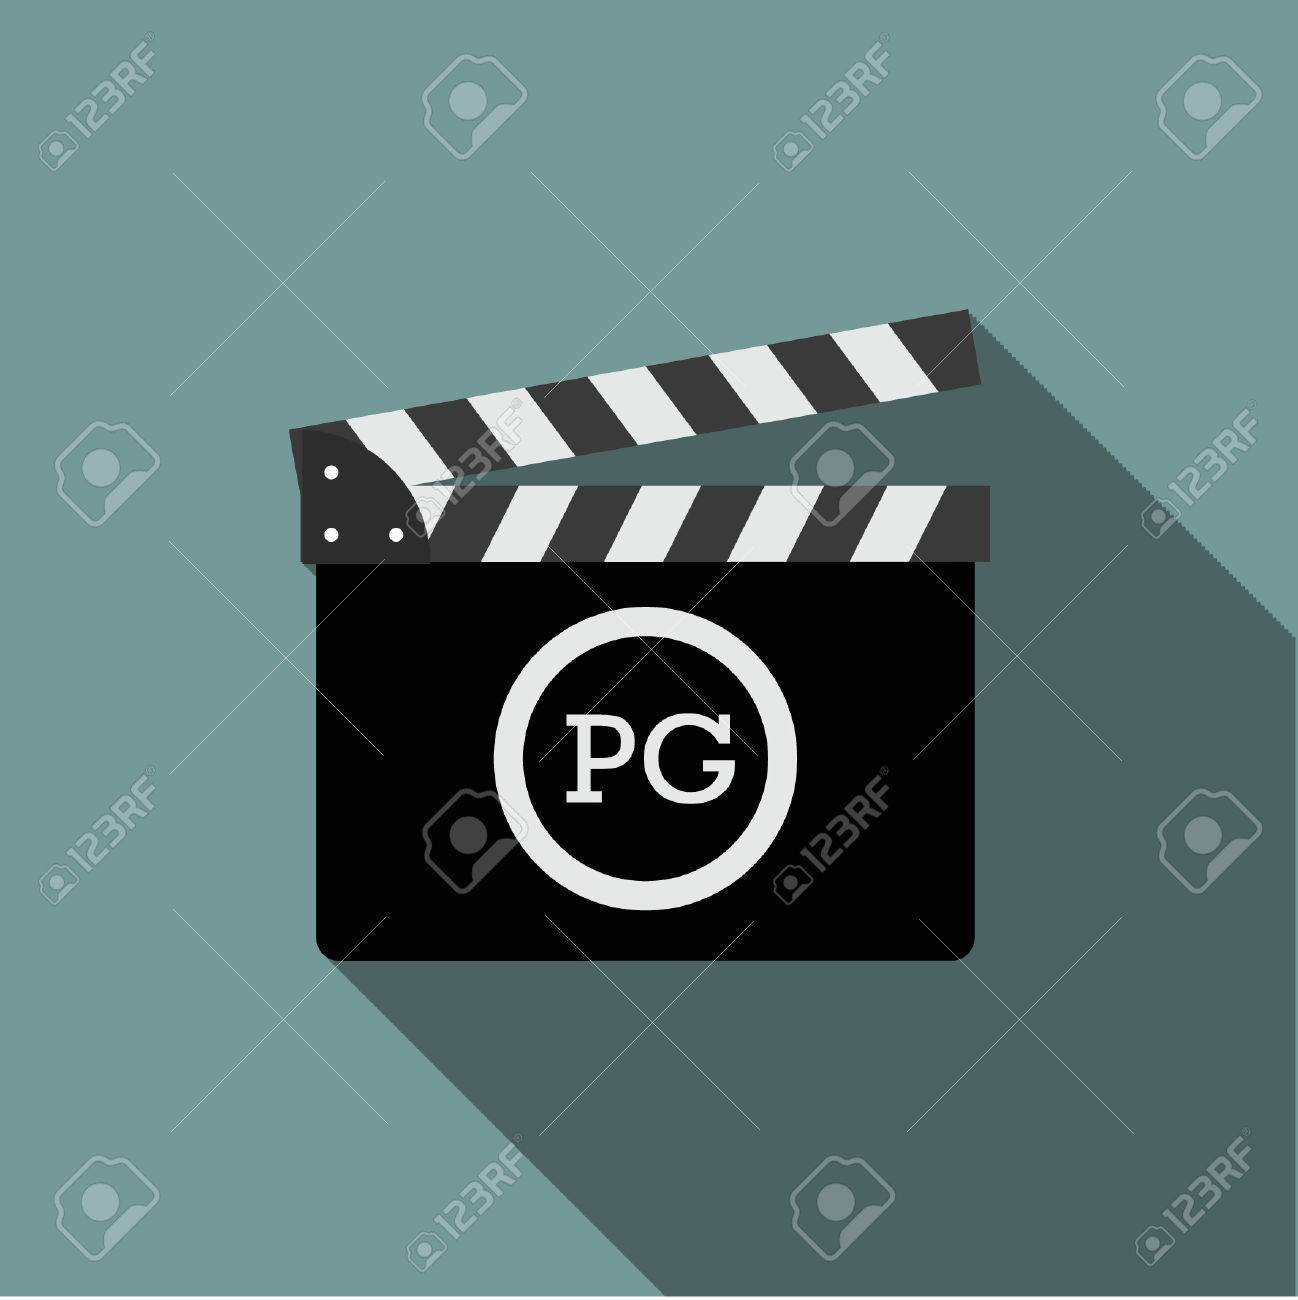 Movie Clapper With Rate Pg Royalty Free Cliparts Vectors And Stock